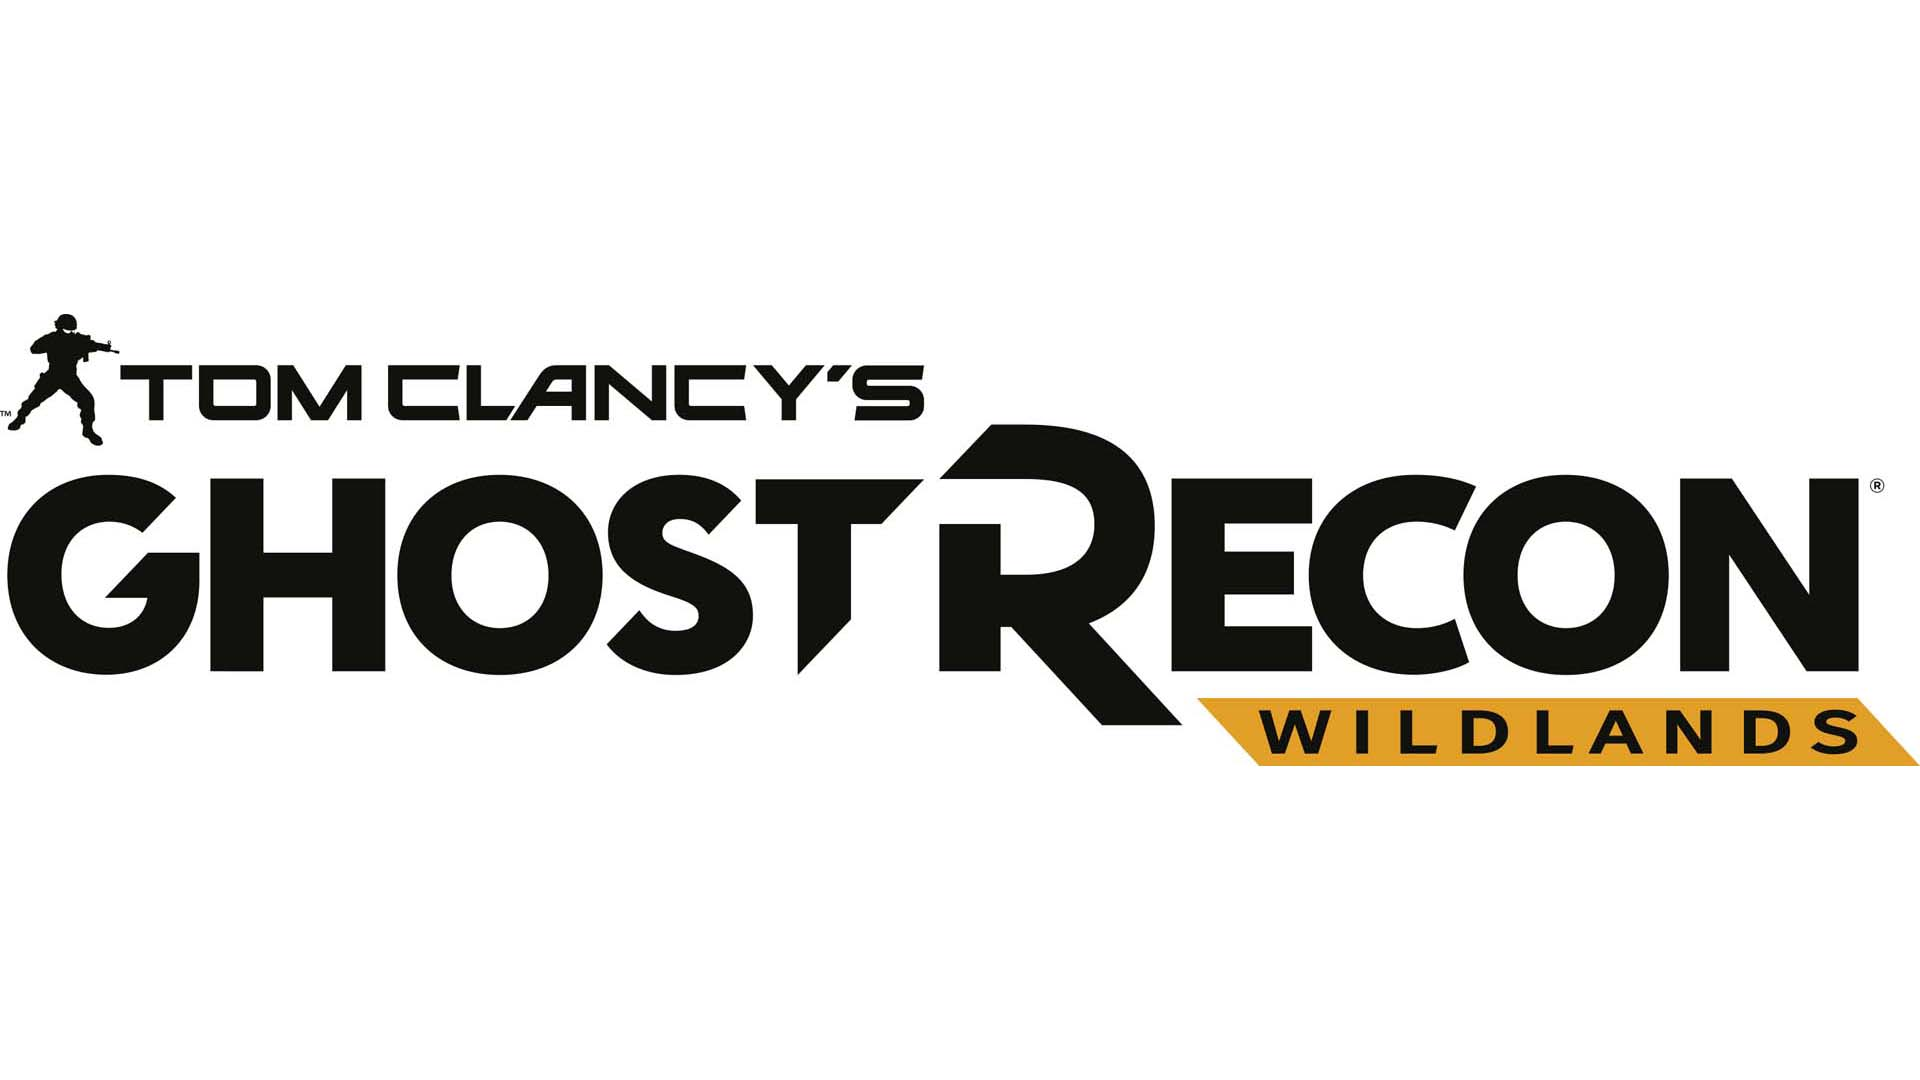 TOM CLANCY'S GHOST RECON WILDLANDS – AUF DEN SPUREN DES ANDEN-YETI